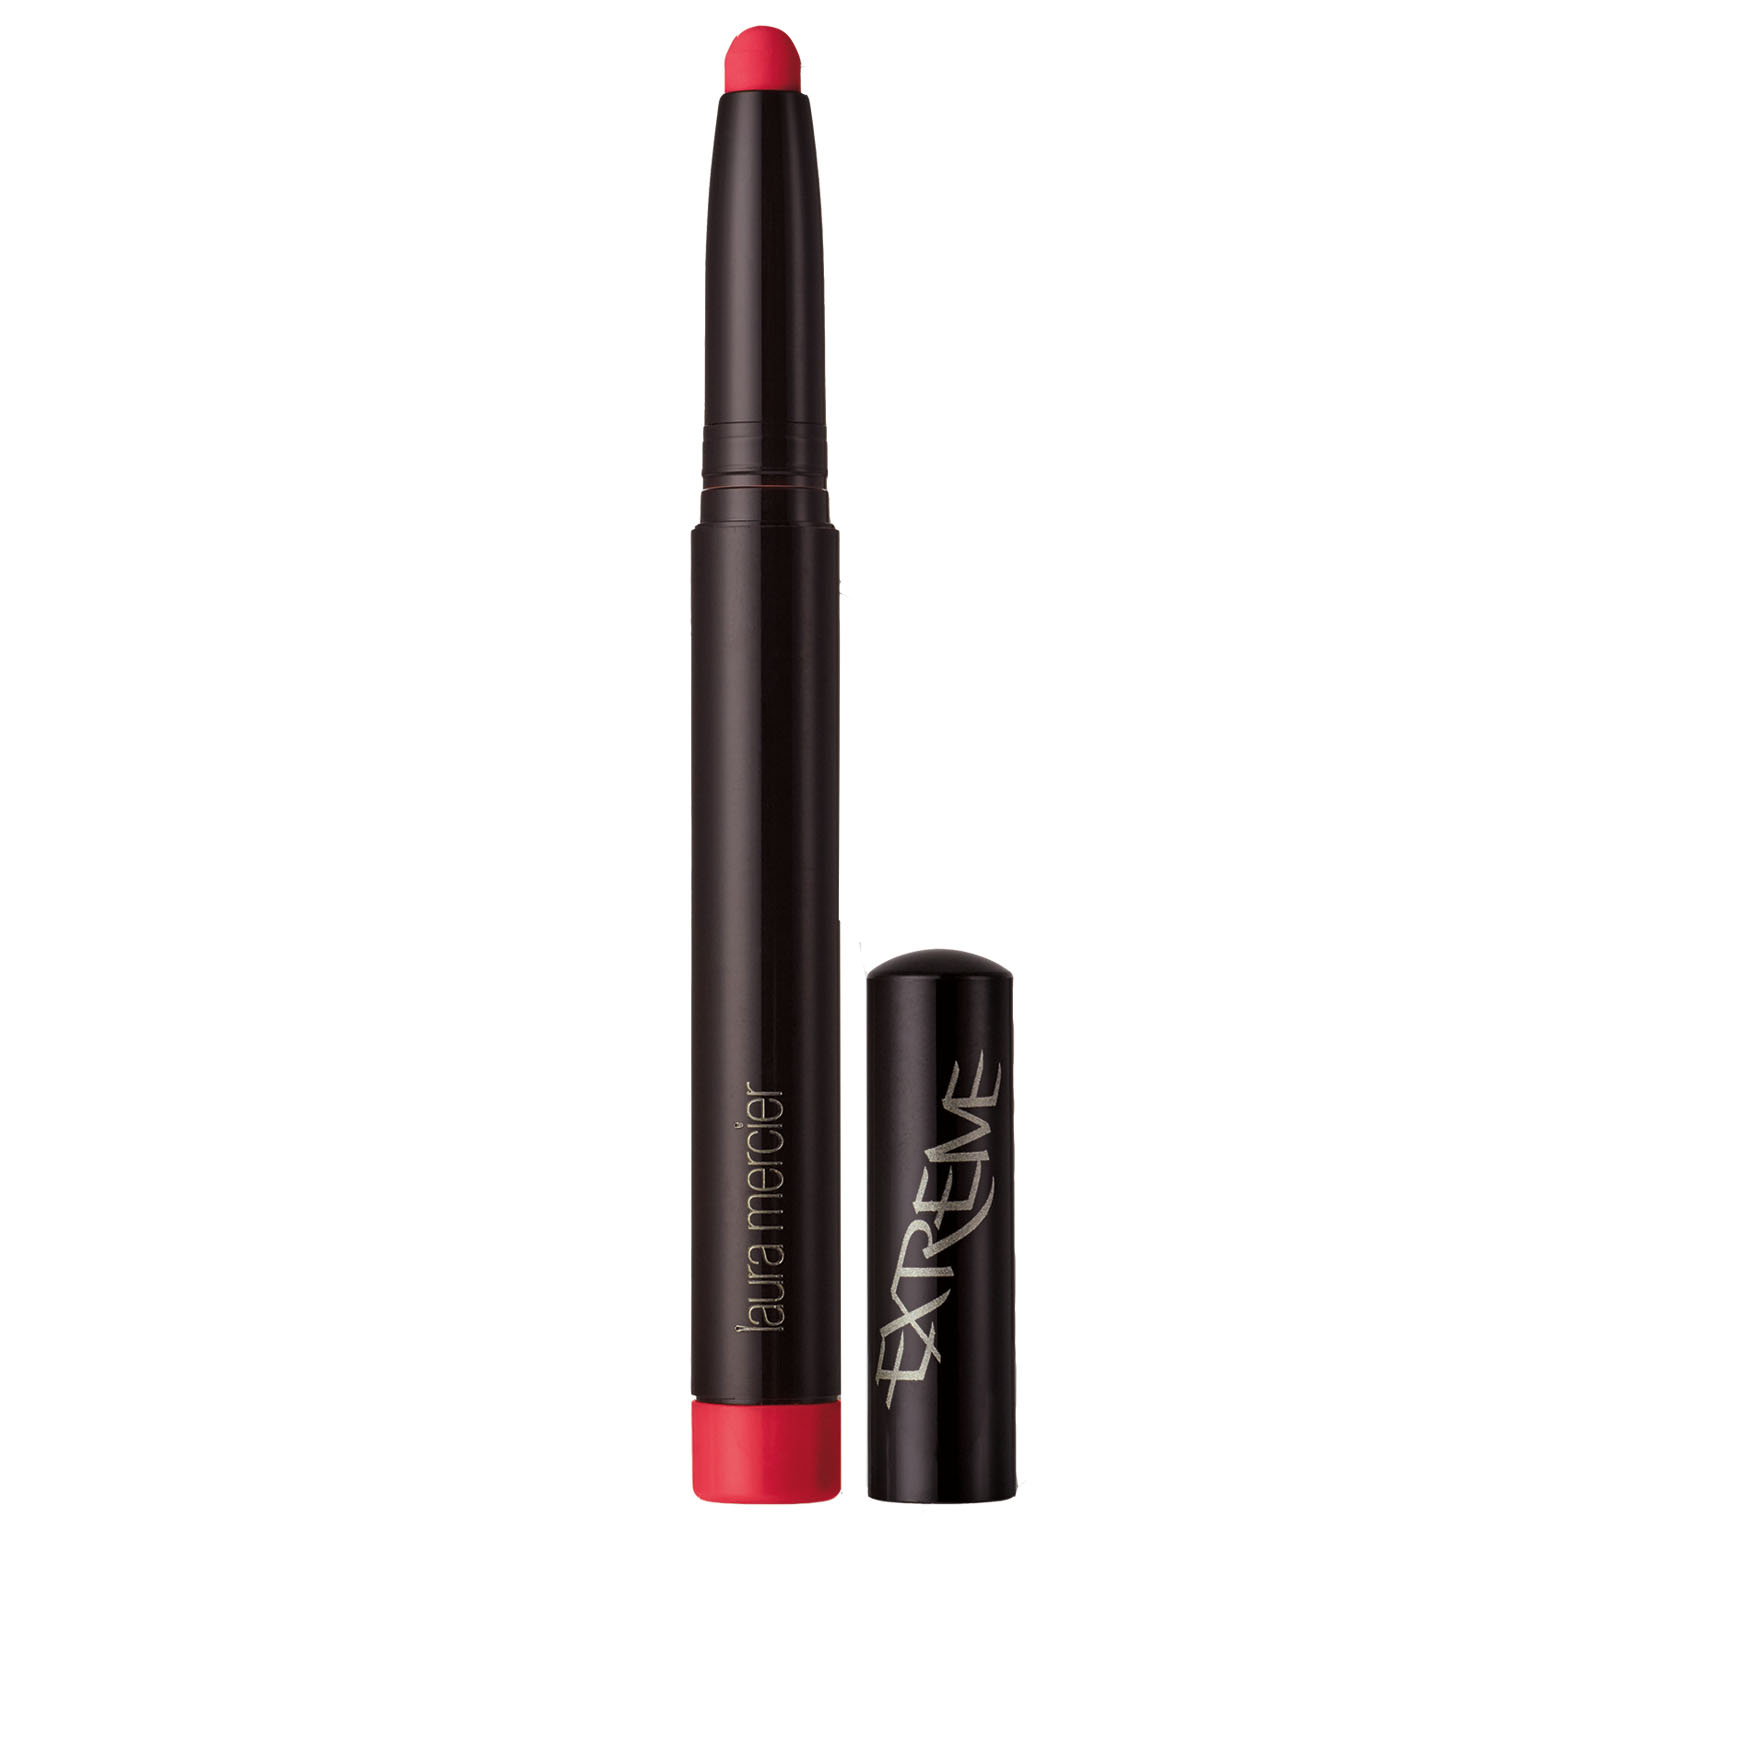 Velour Extreme Matte Lipstick, DOMINATE, large